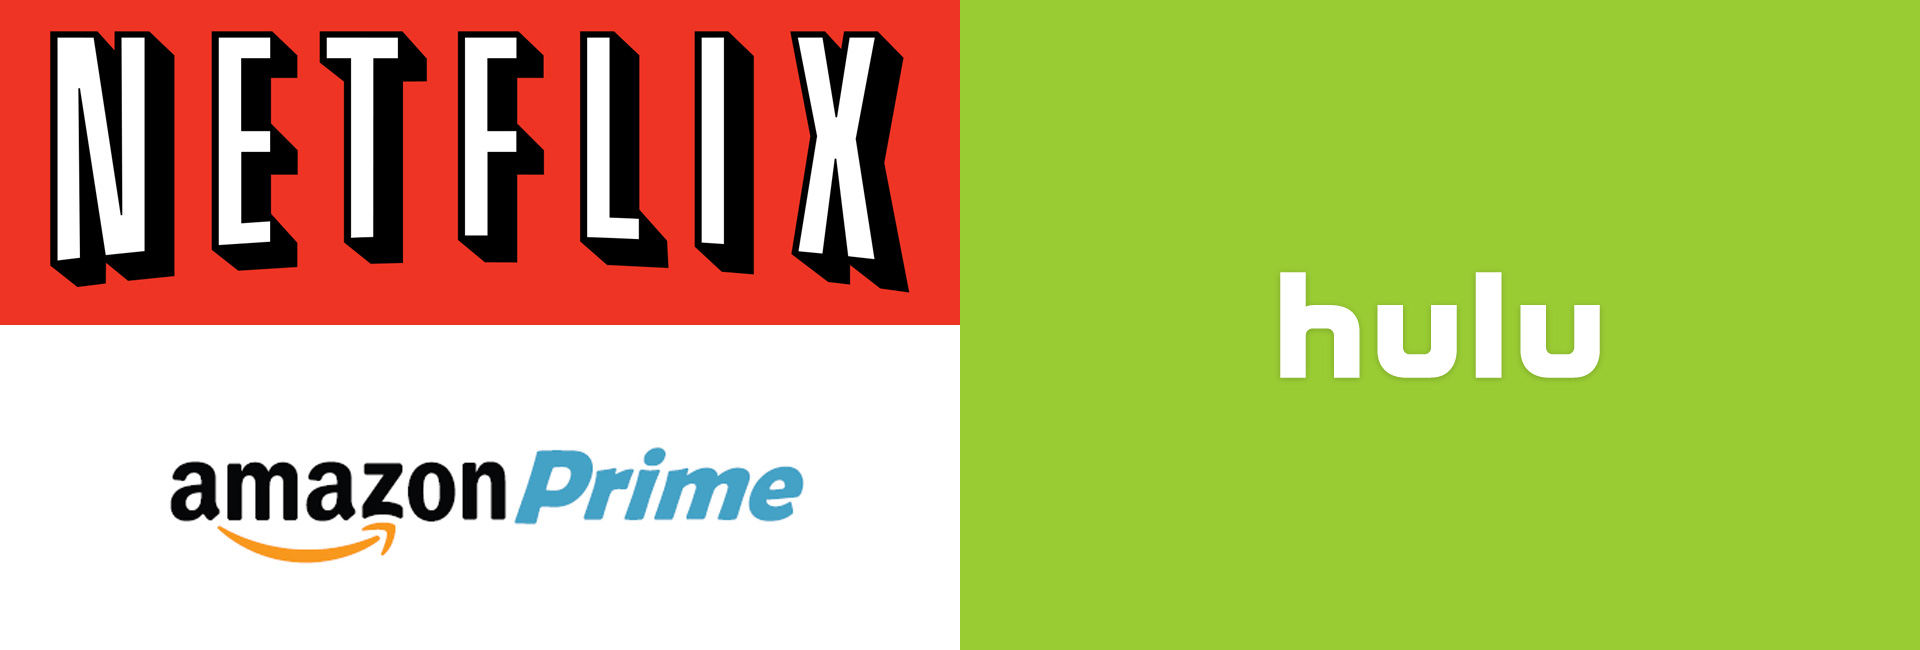 Netflix deals for returning customers